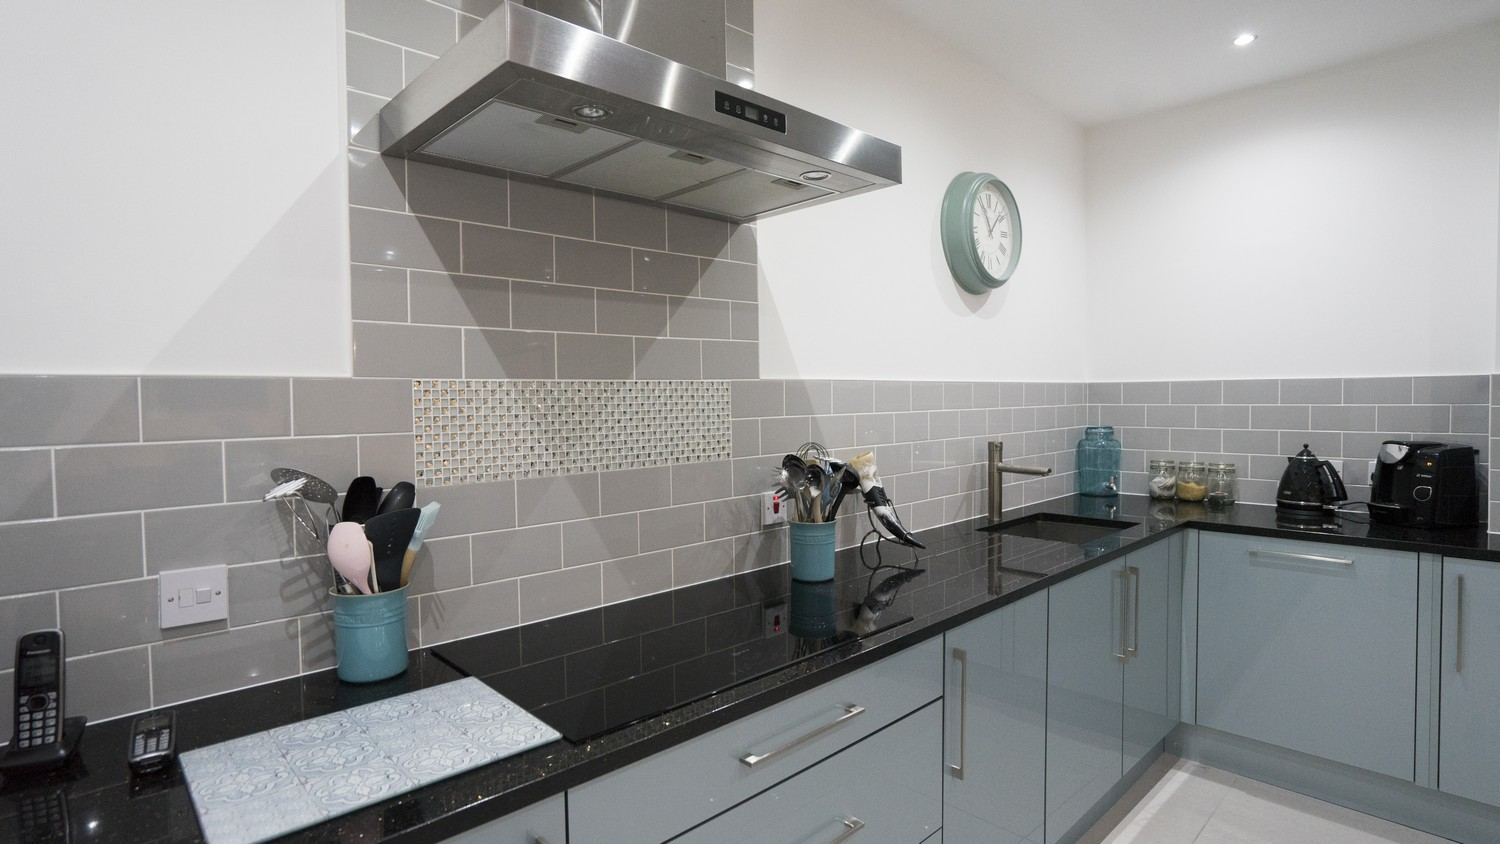 Blue gloss kitchen  with grey tiled splash back, large mirror finish black cooking hob and under-mount sink.